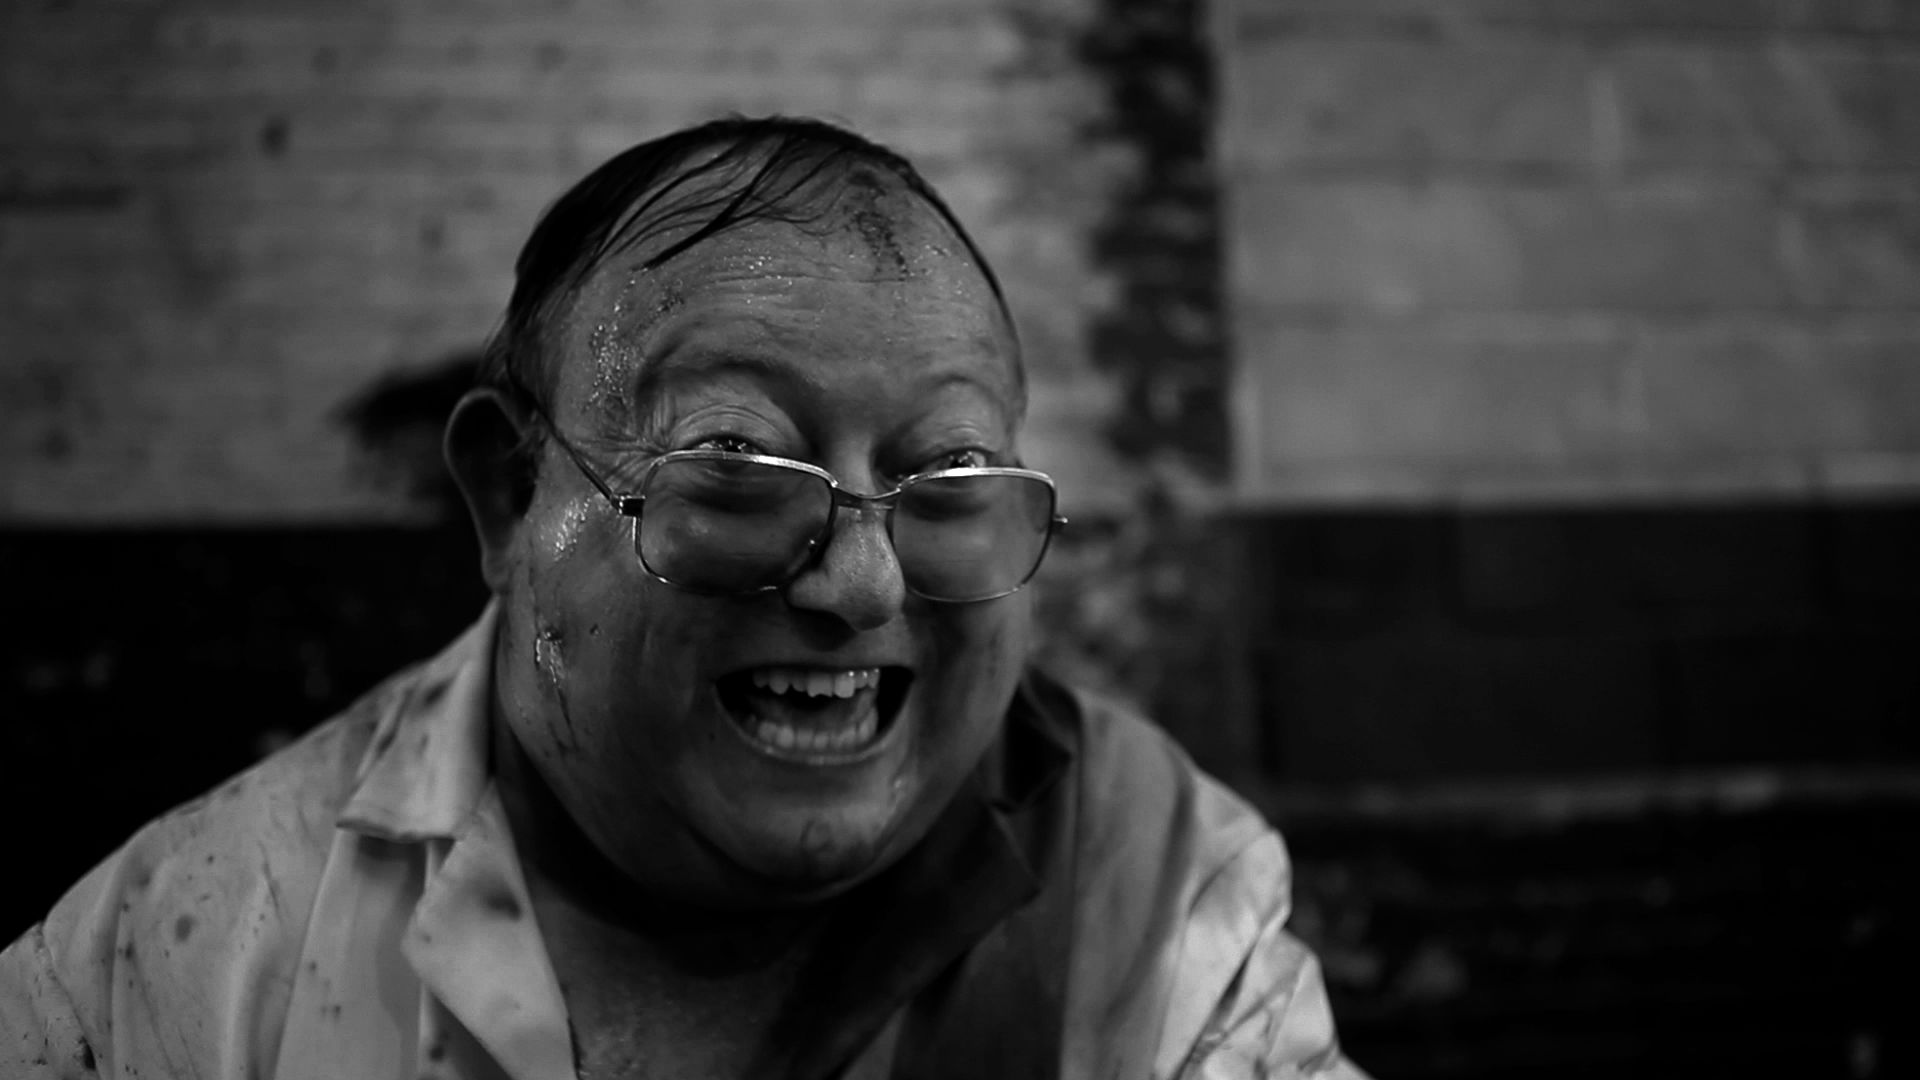 THE HUMAN CENTIPEDE 2 (FULL SEQUENCE) Review